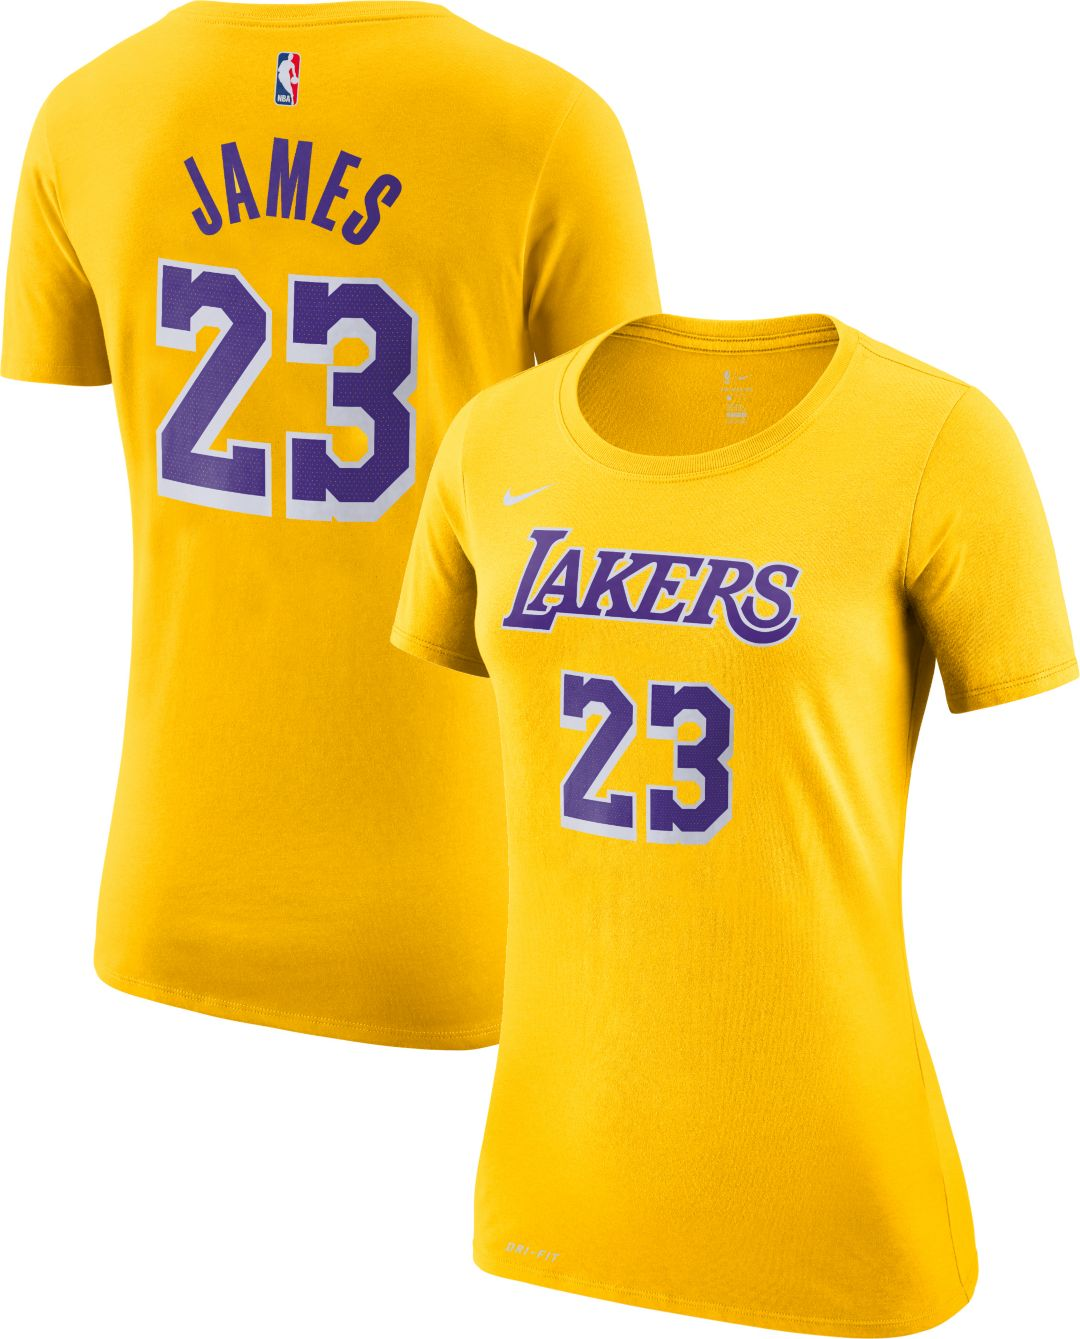 4f6704544 Nike Women's Los Angeles Lakers LeBron James Dri-FIT Gold T-Shirt